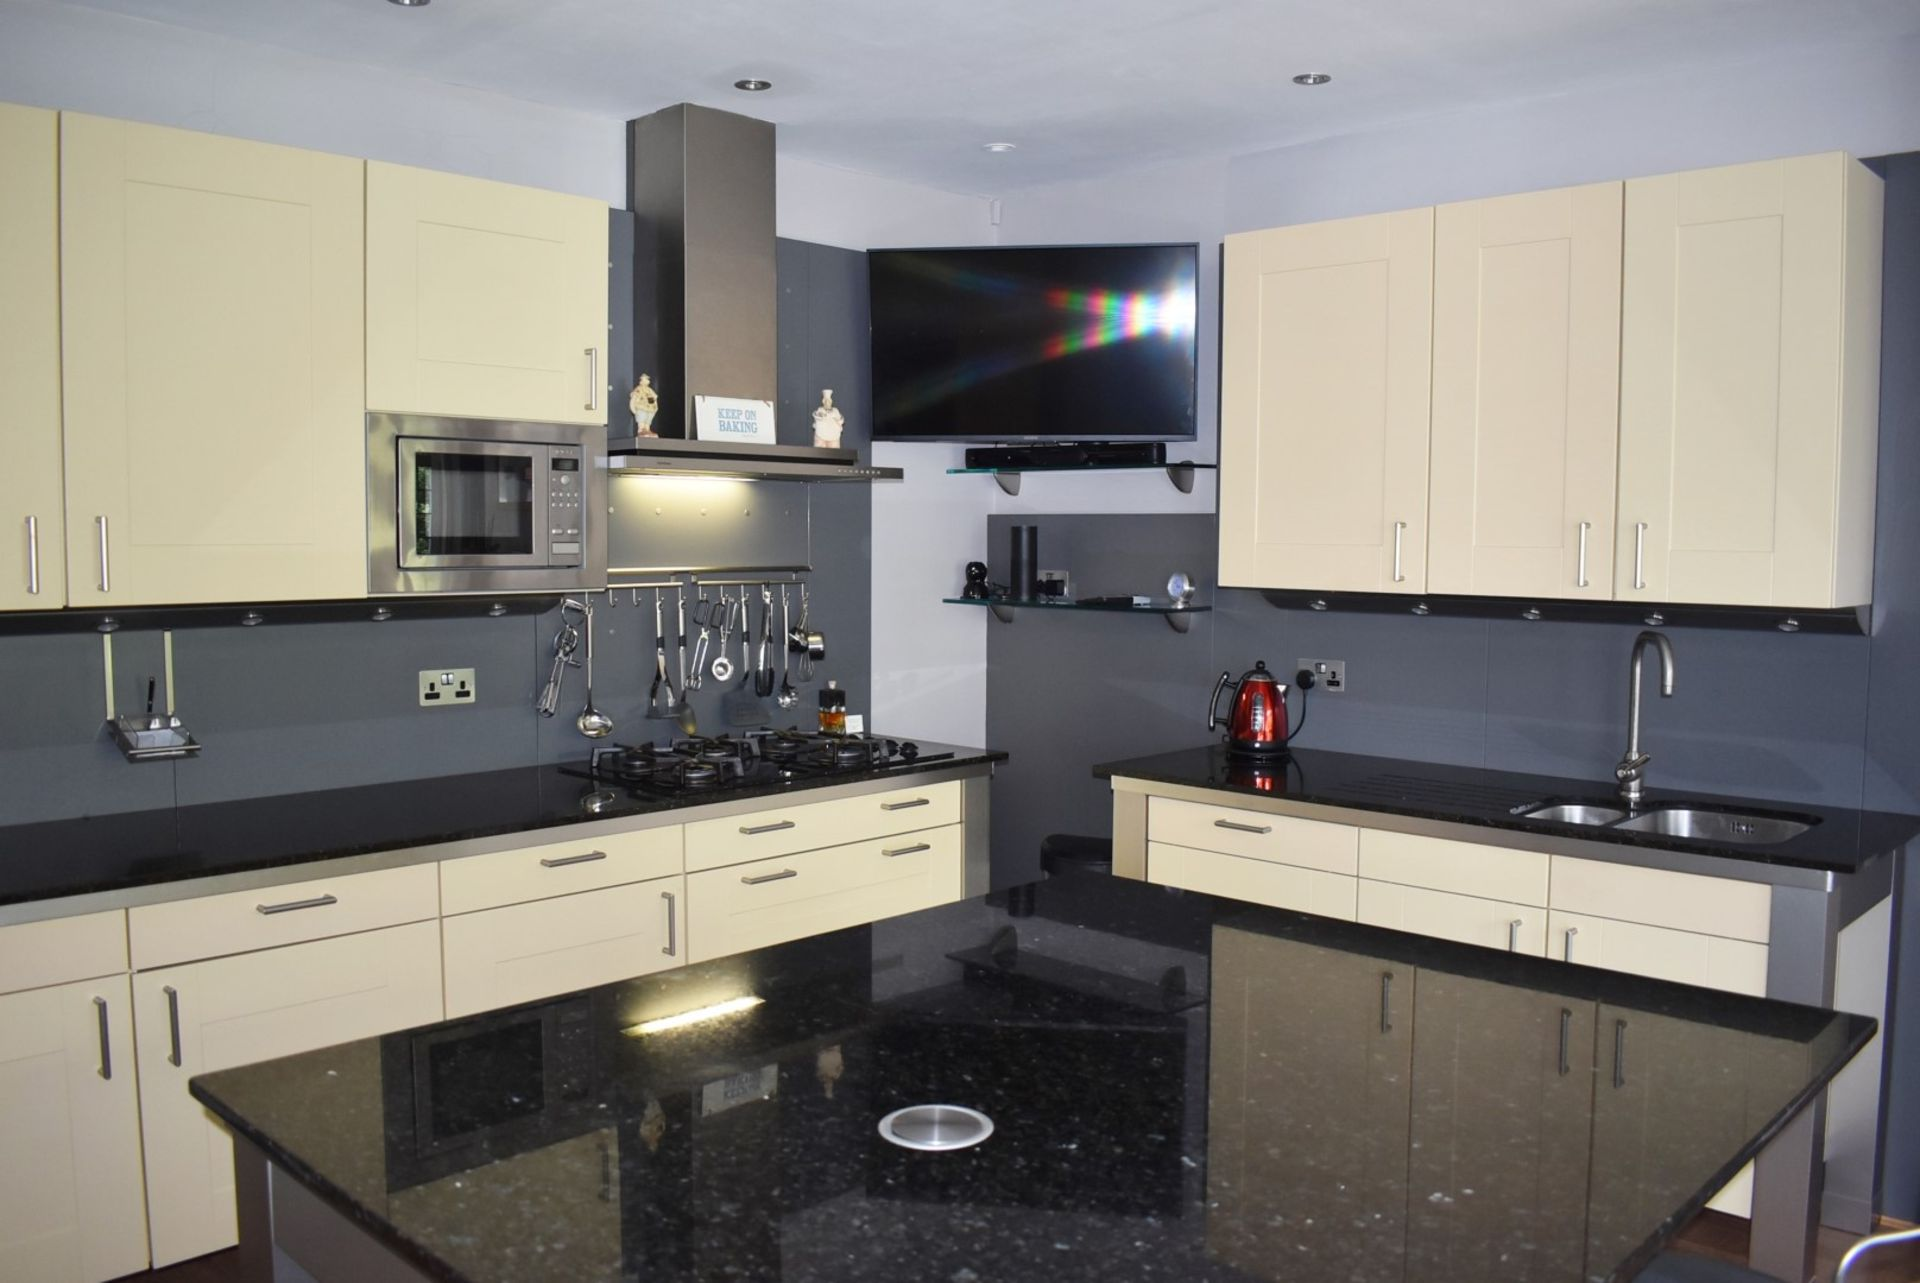 1 x SieMatic Contemporary Fitted Kitchen With Appliances - Features Shaker Style Doors, Central